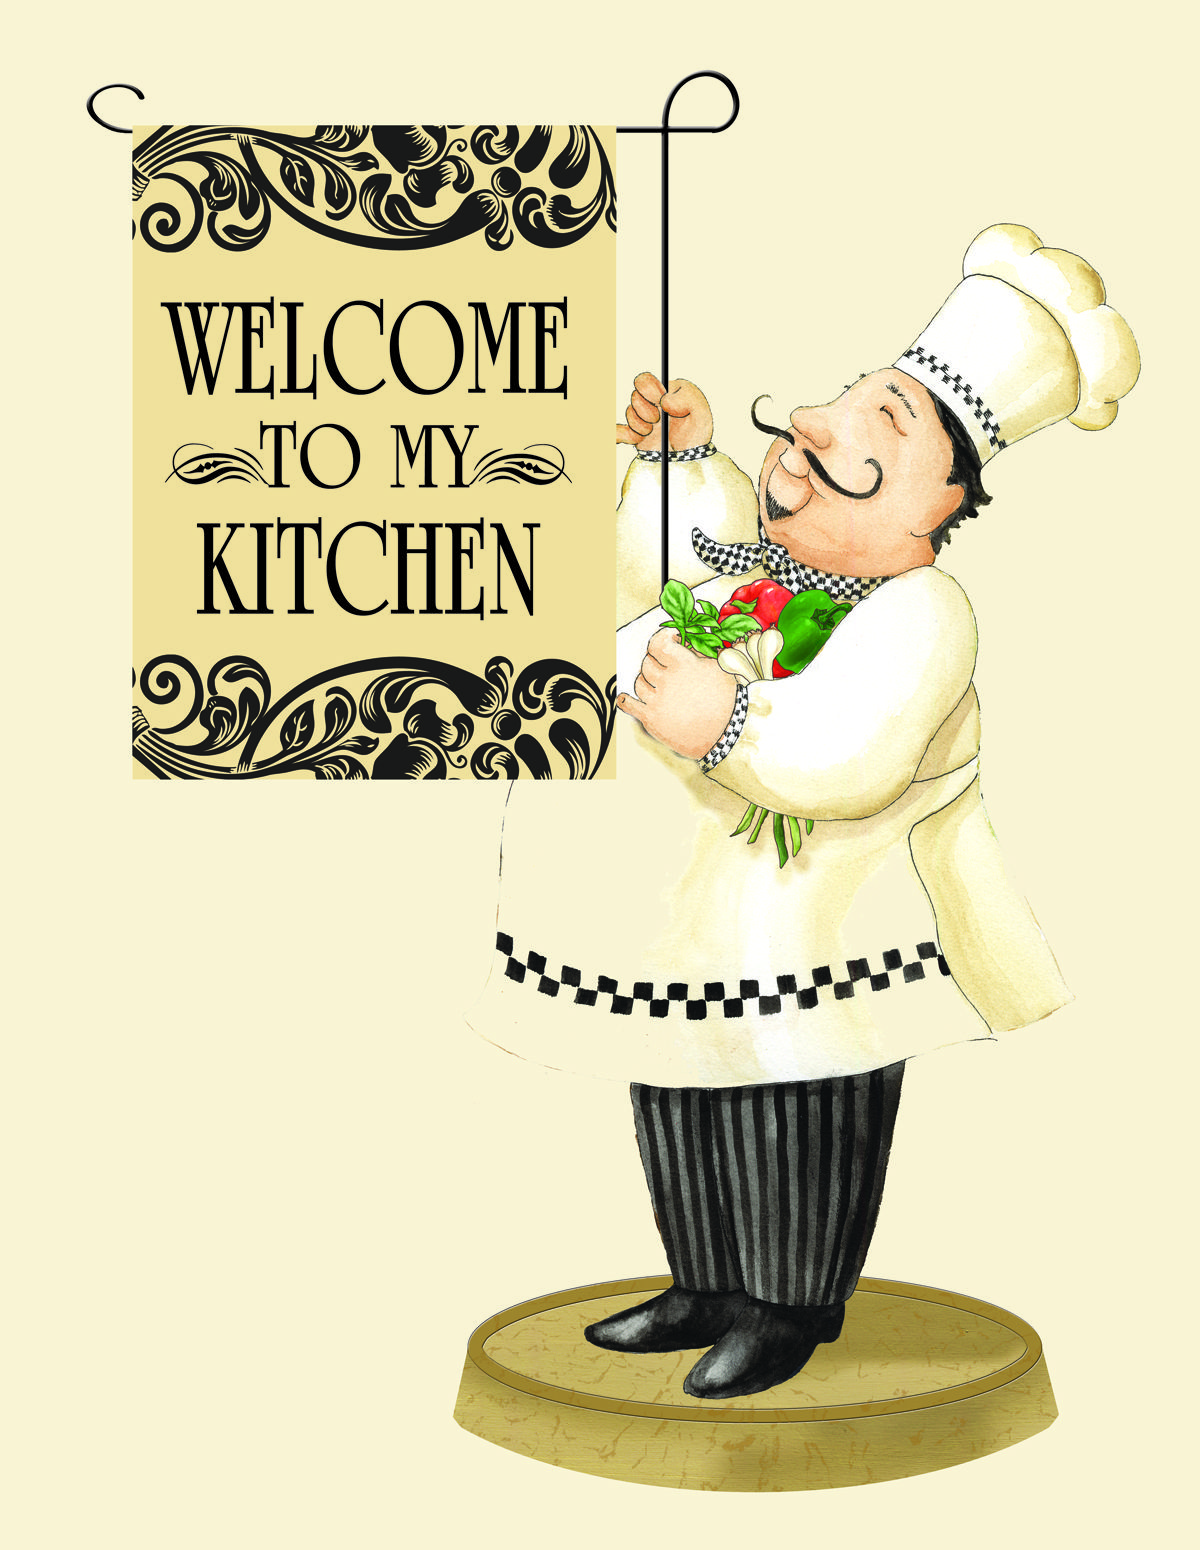 Retro Schilder Küche Chef Mini Flag By Vicky Howard Clip Art Küche Kochbuch